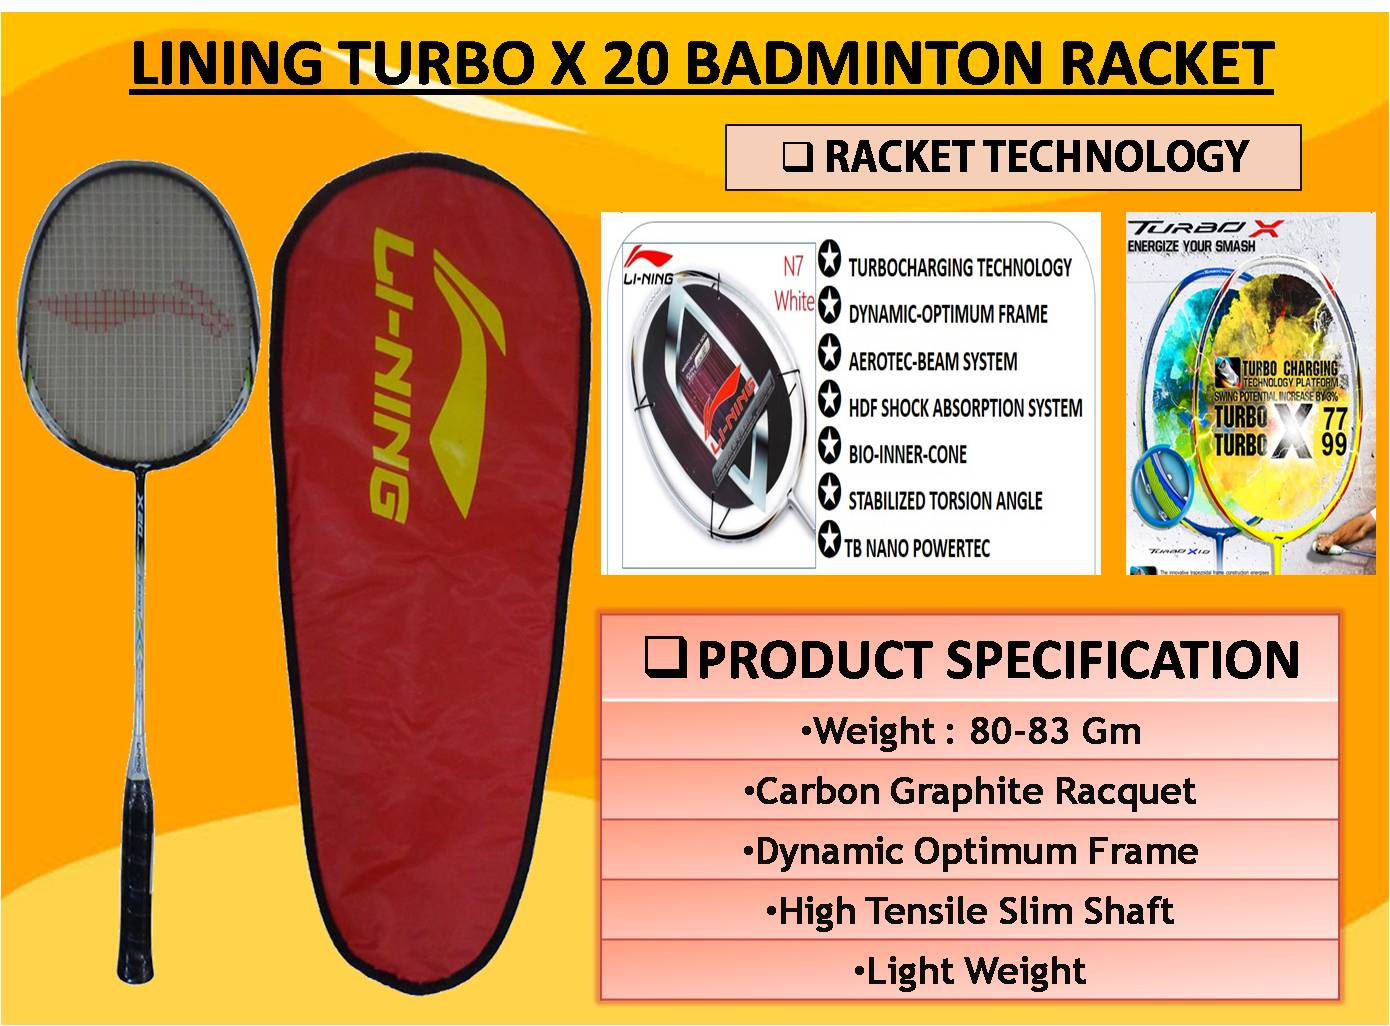 LINING TURBO X 20 BADMINTON RACKET